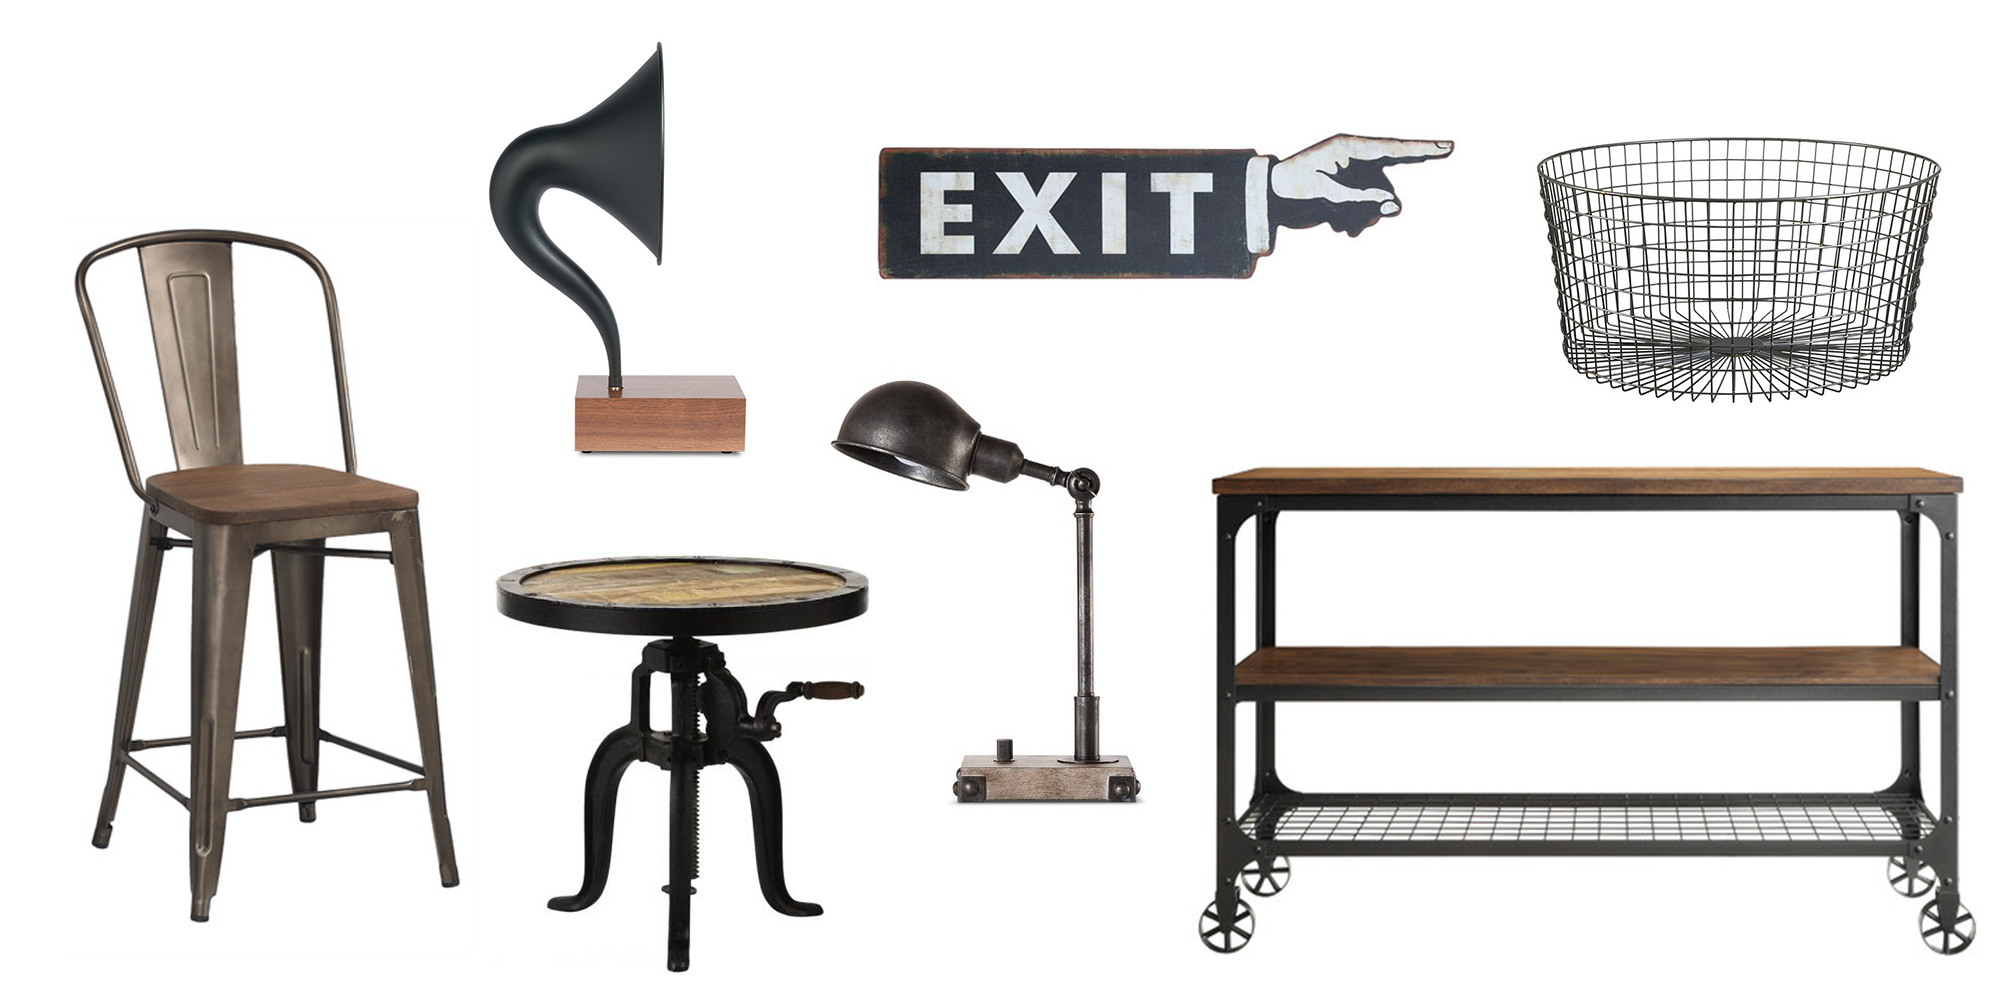 12 Best Industrial Decor And Furniture Of 2018 Ideas For